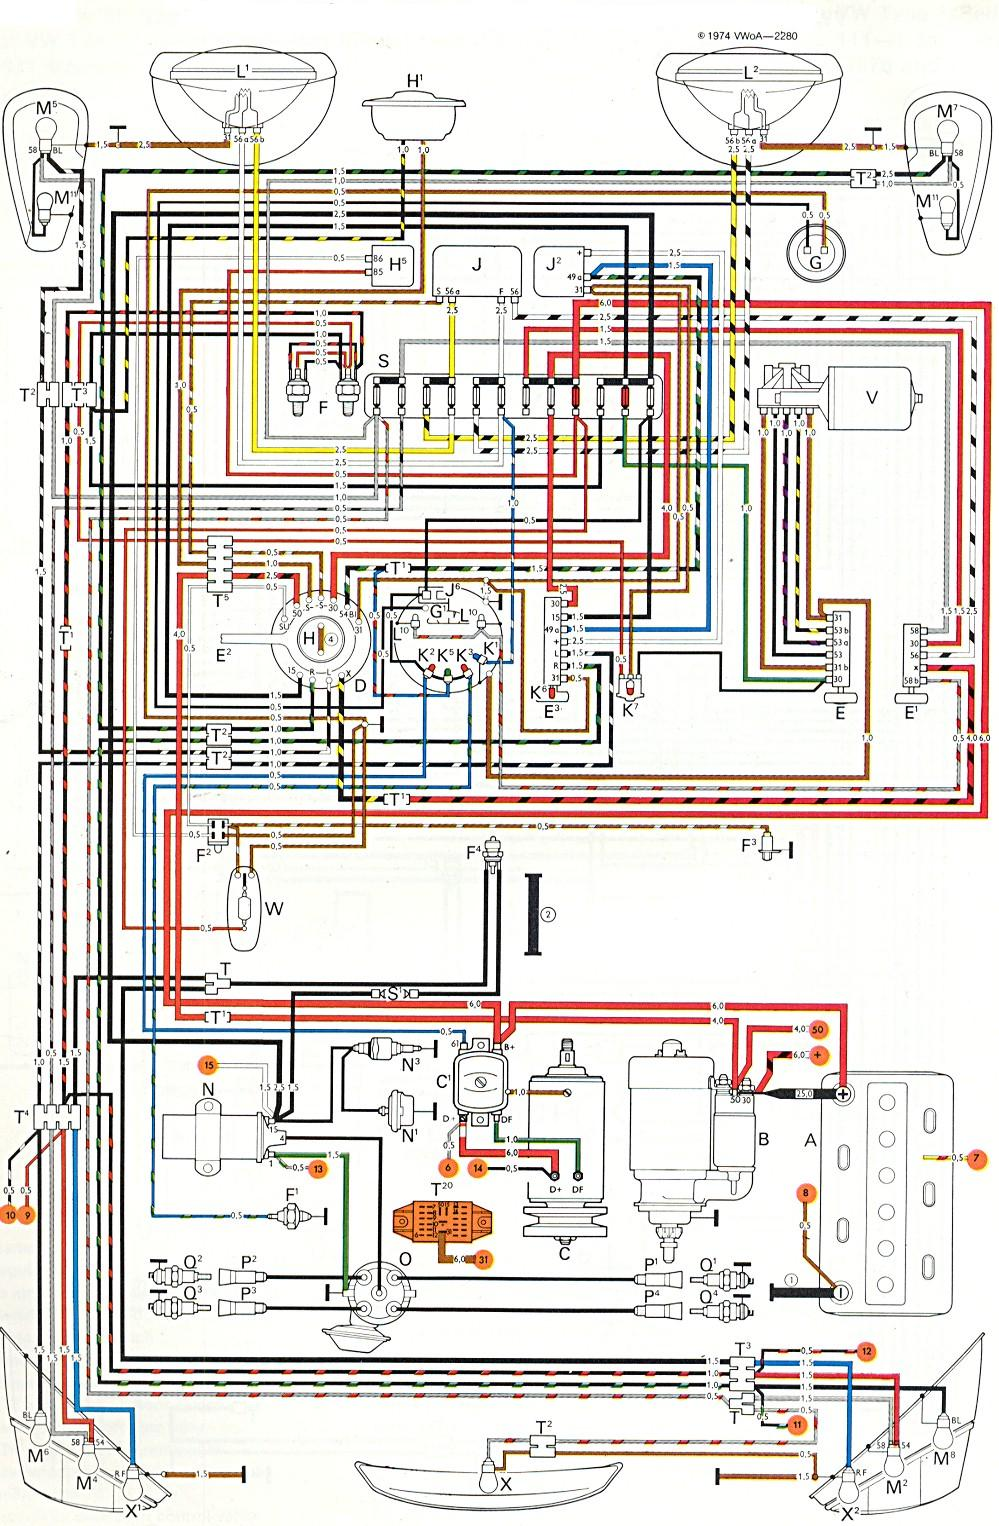 Diagram 1971 Vw Super Beetle Ignition Switch Wiring Diagram Full Version Hd Quality Wiring Diagram Lielirin Oltreilmurofestival It